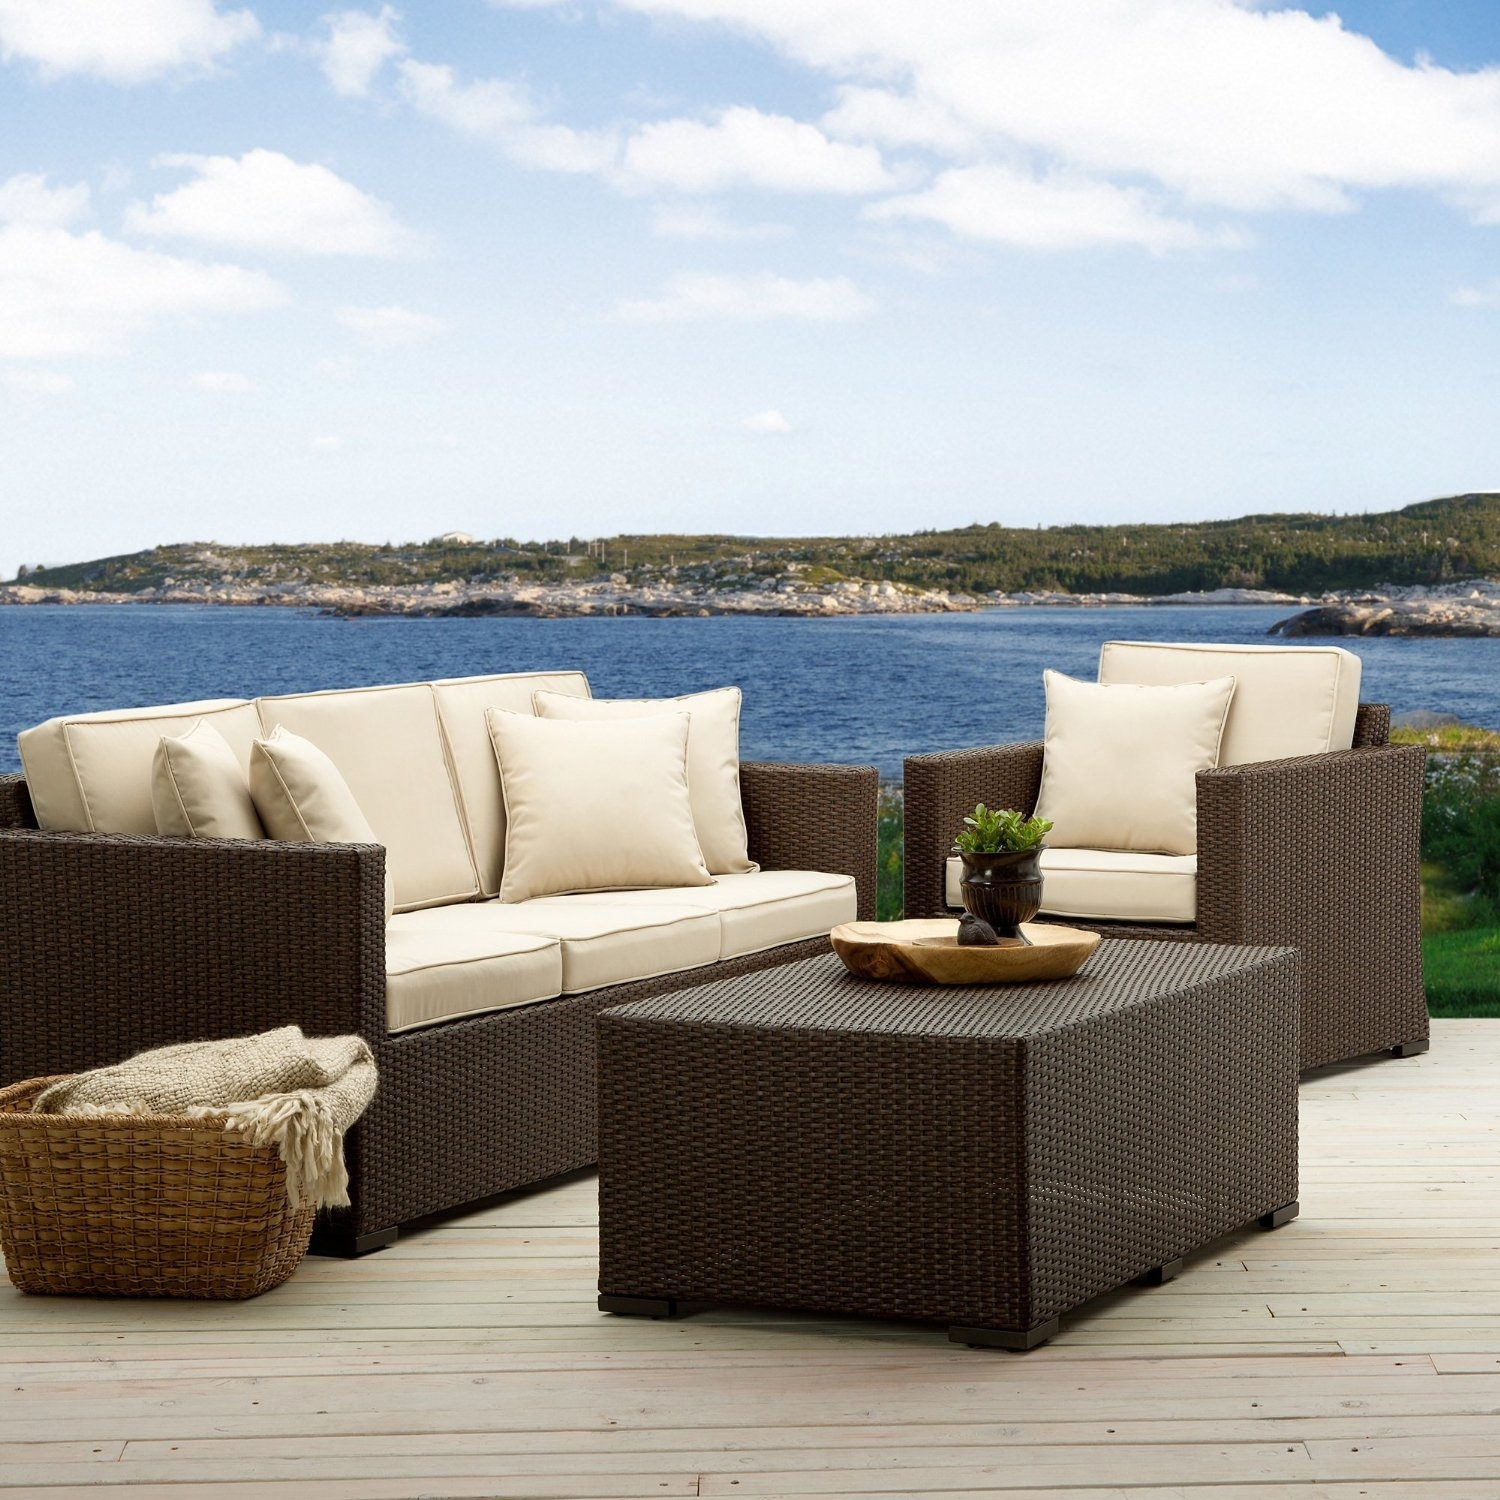 Modern Furniture Modern Metal Patio Furniture Compact Limestone With Outdoor Contemporary Furniture Wooden Outdoor Contemporary Furniture